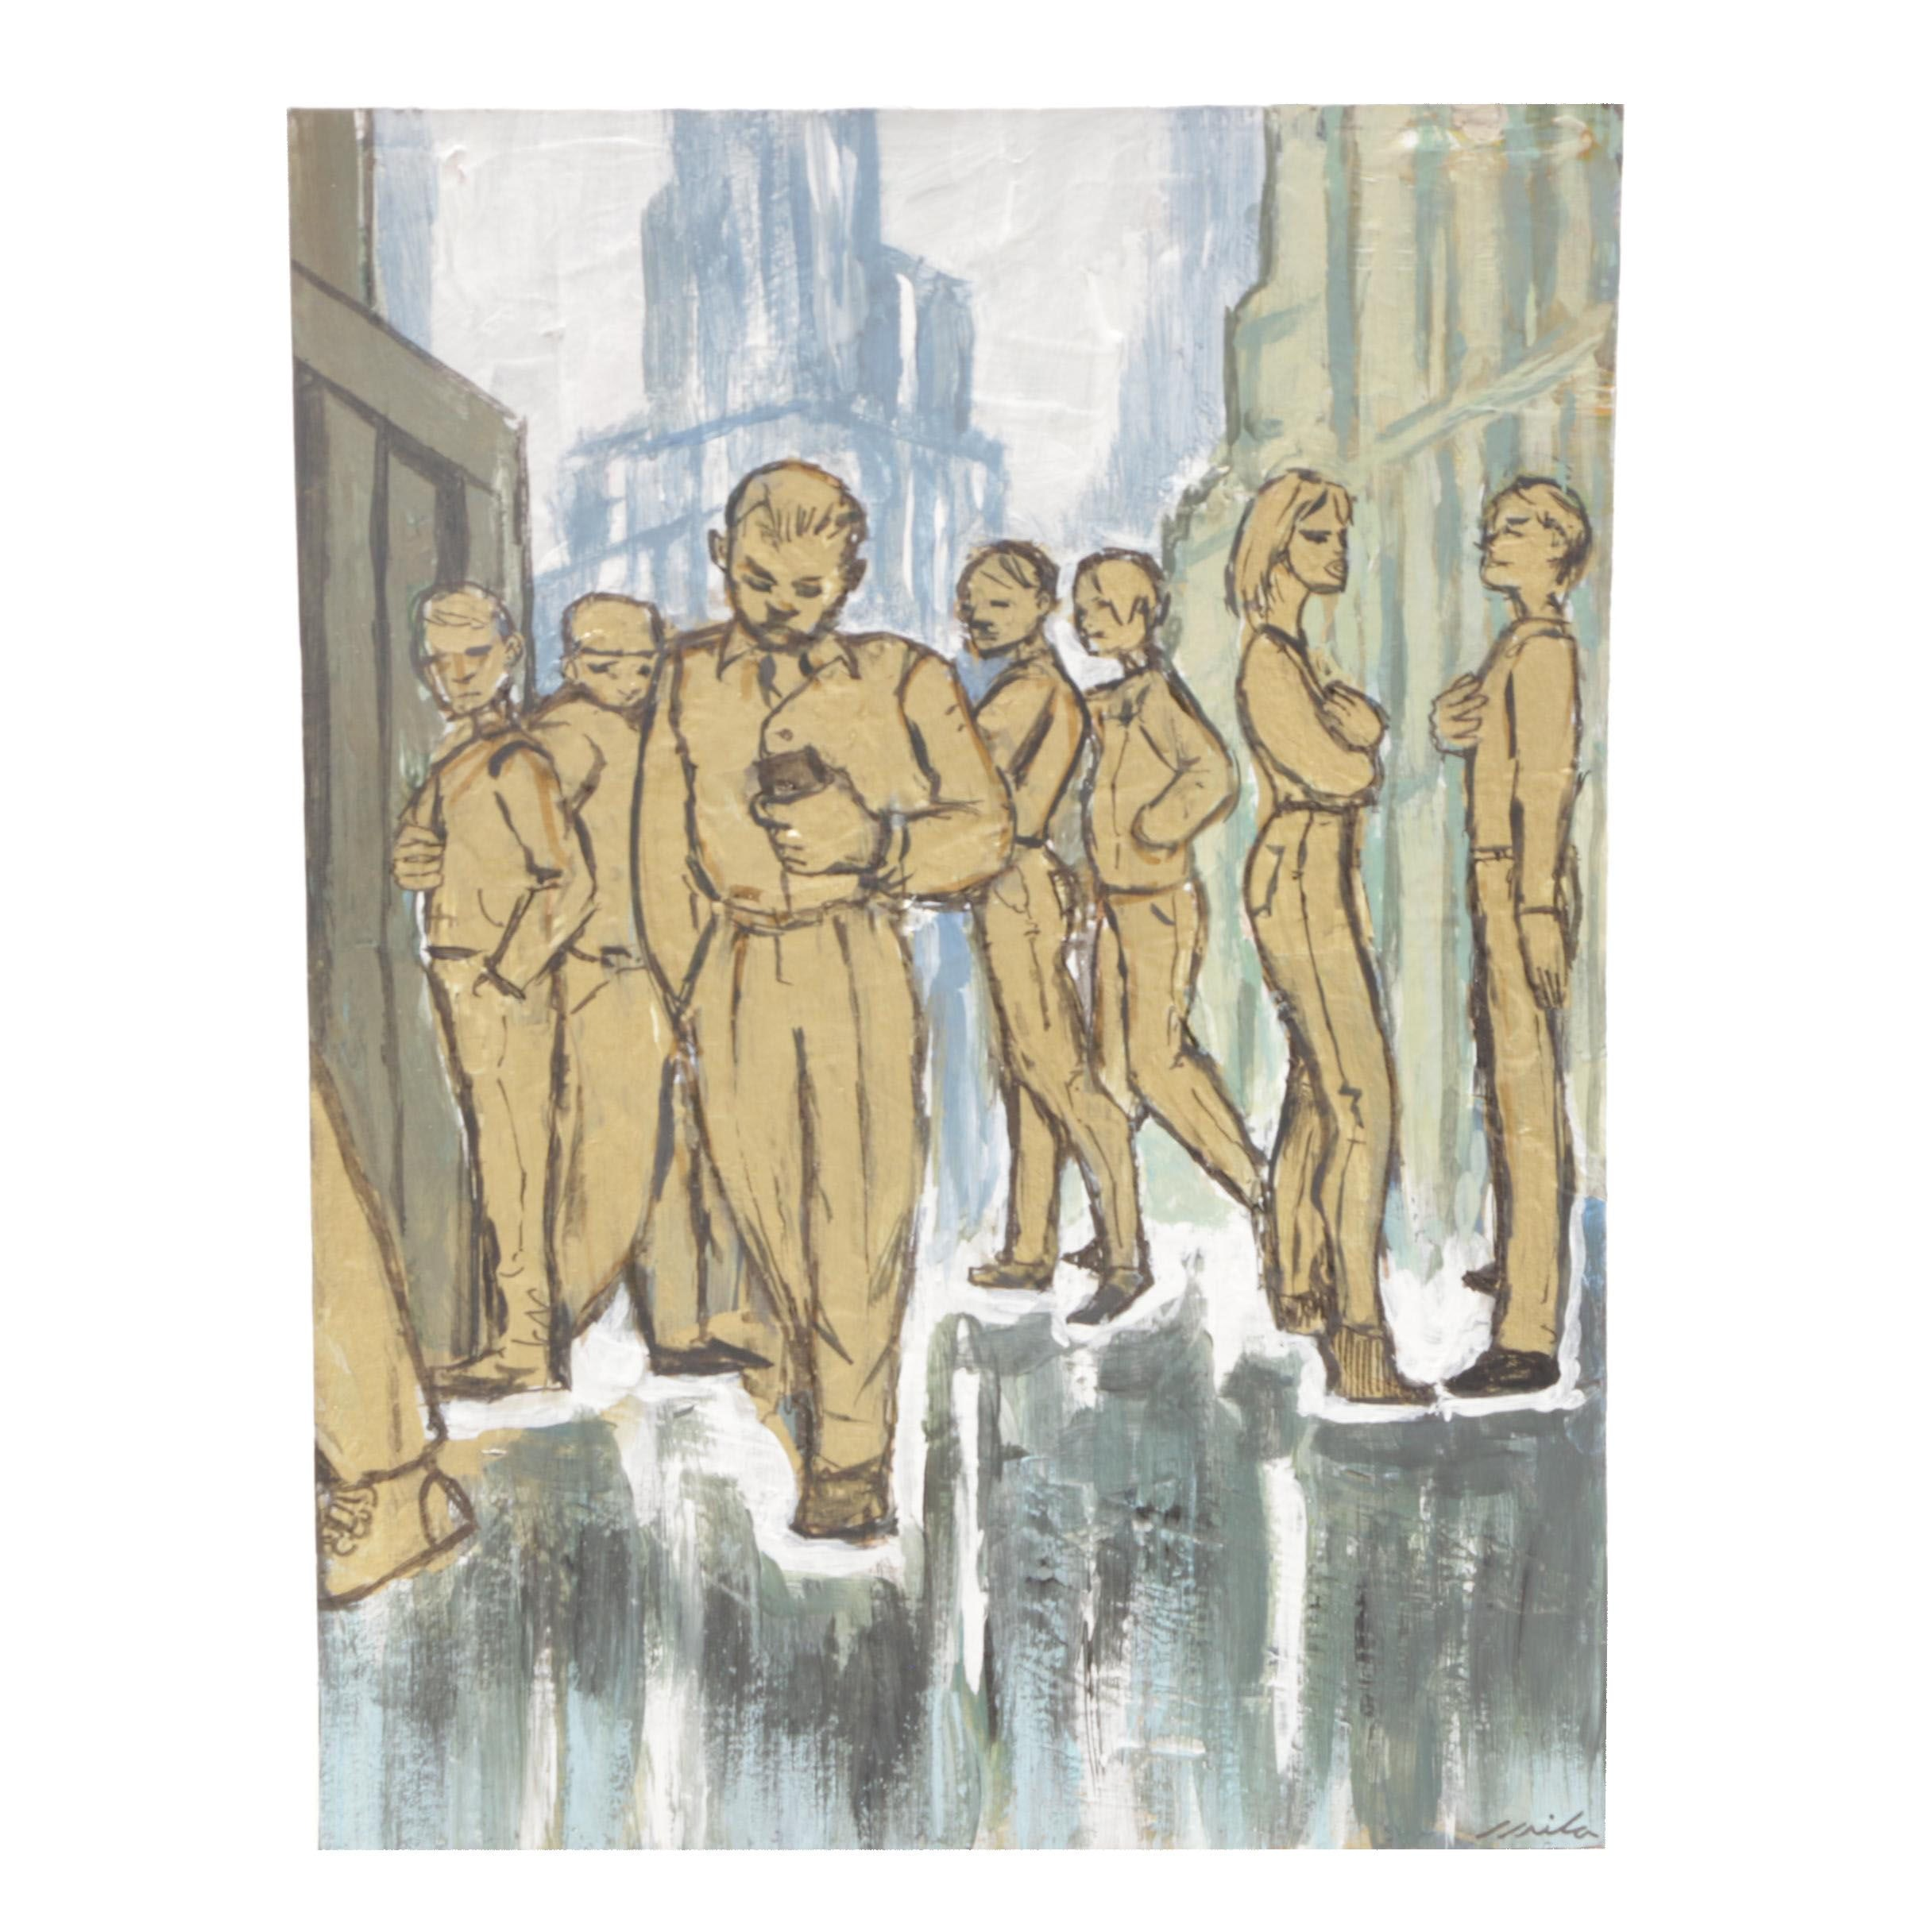 A. Avila Acrylic Painting of Stylized Figures in a City